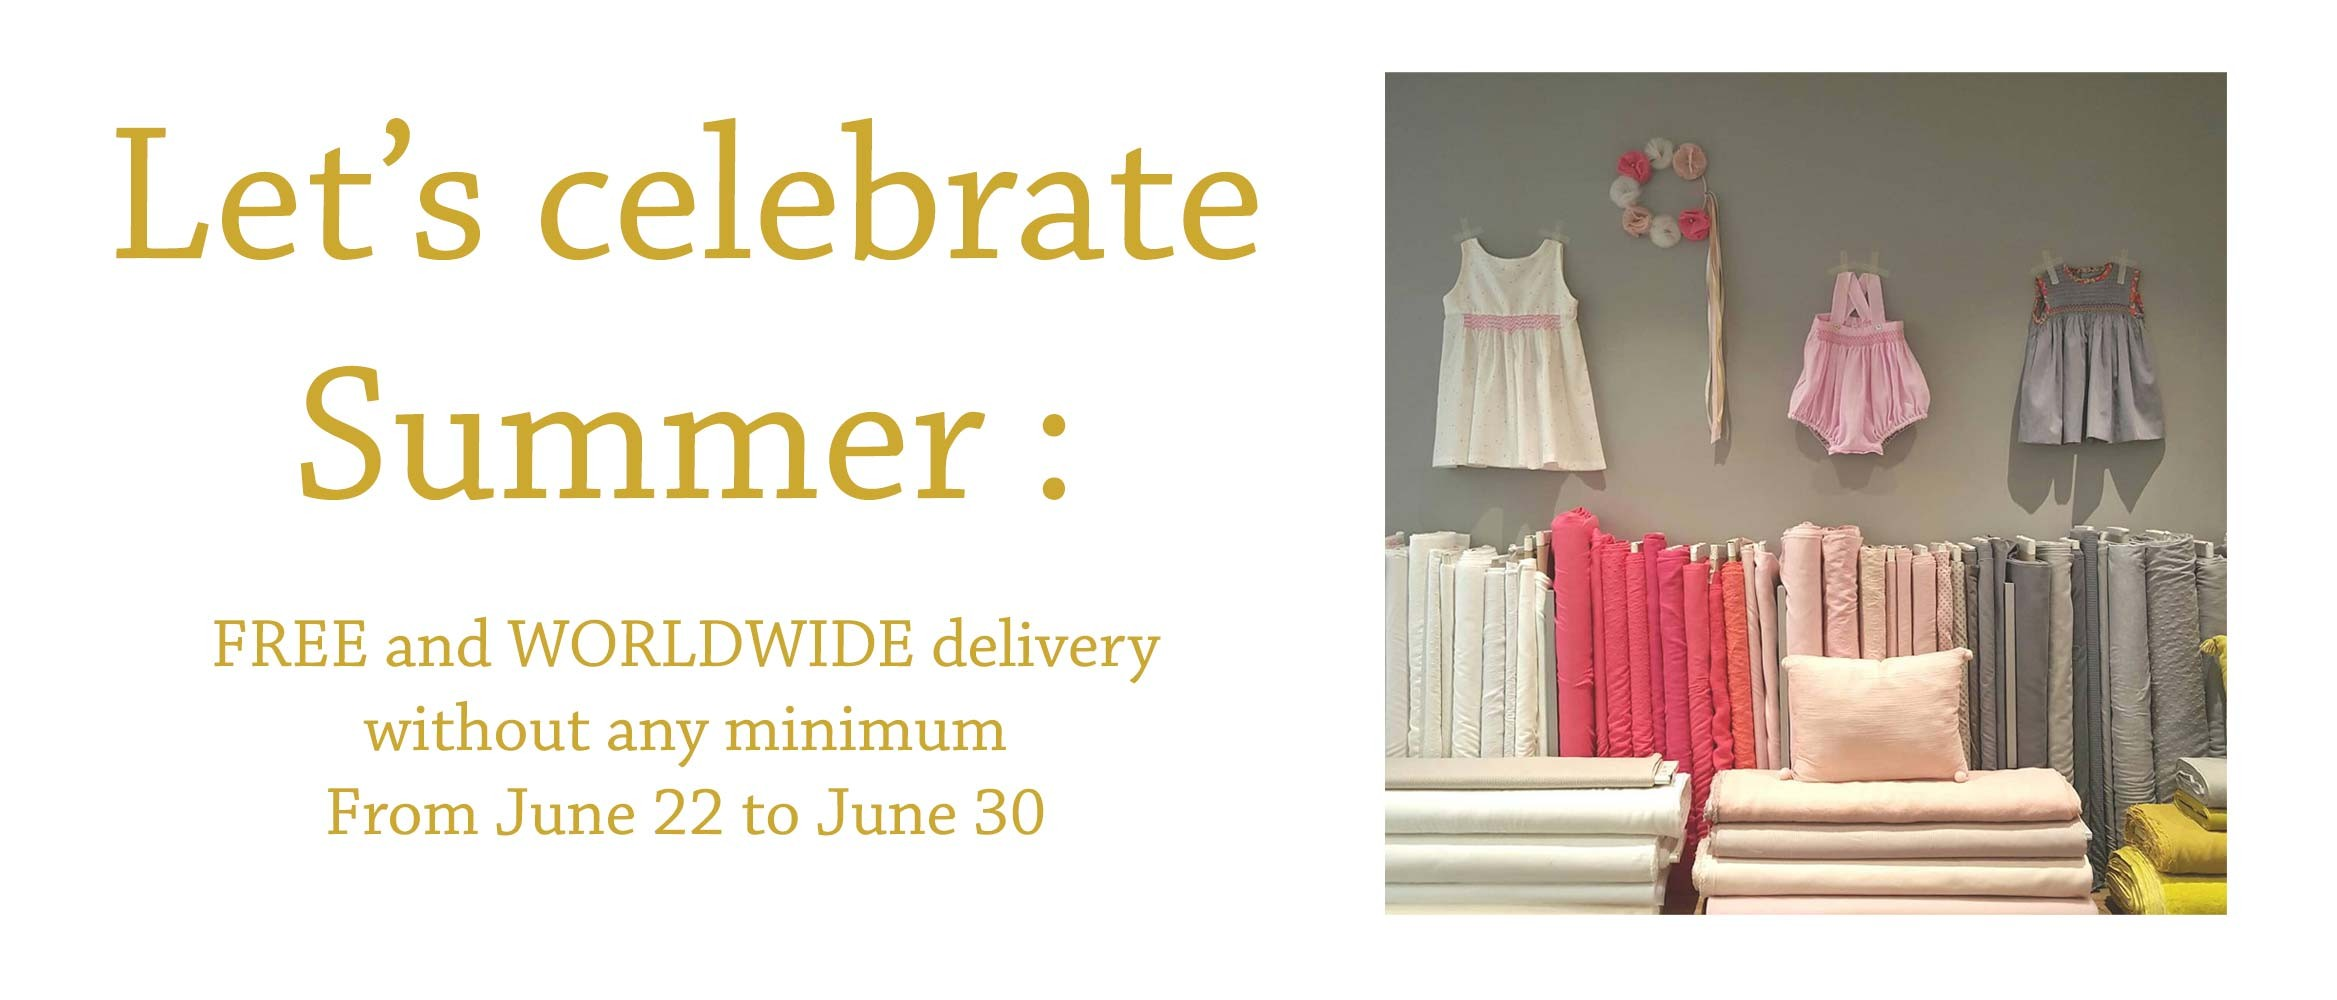 Let's celebrate summer : Worldwide free delivery from june 22 to 30